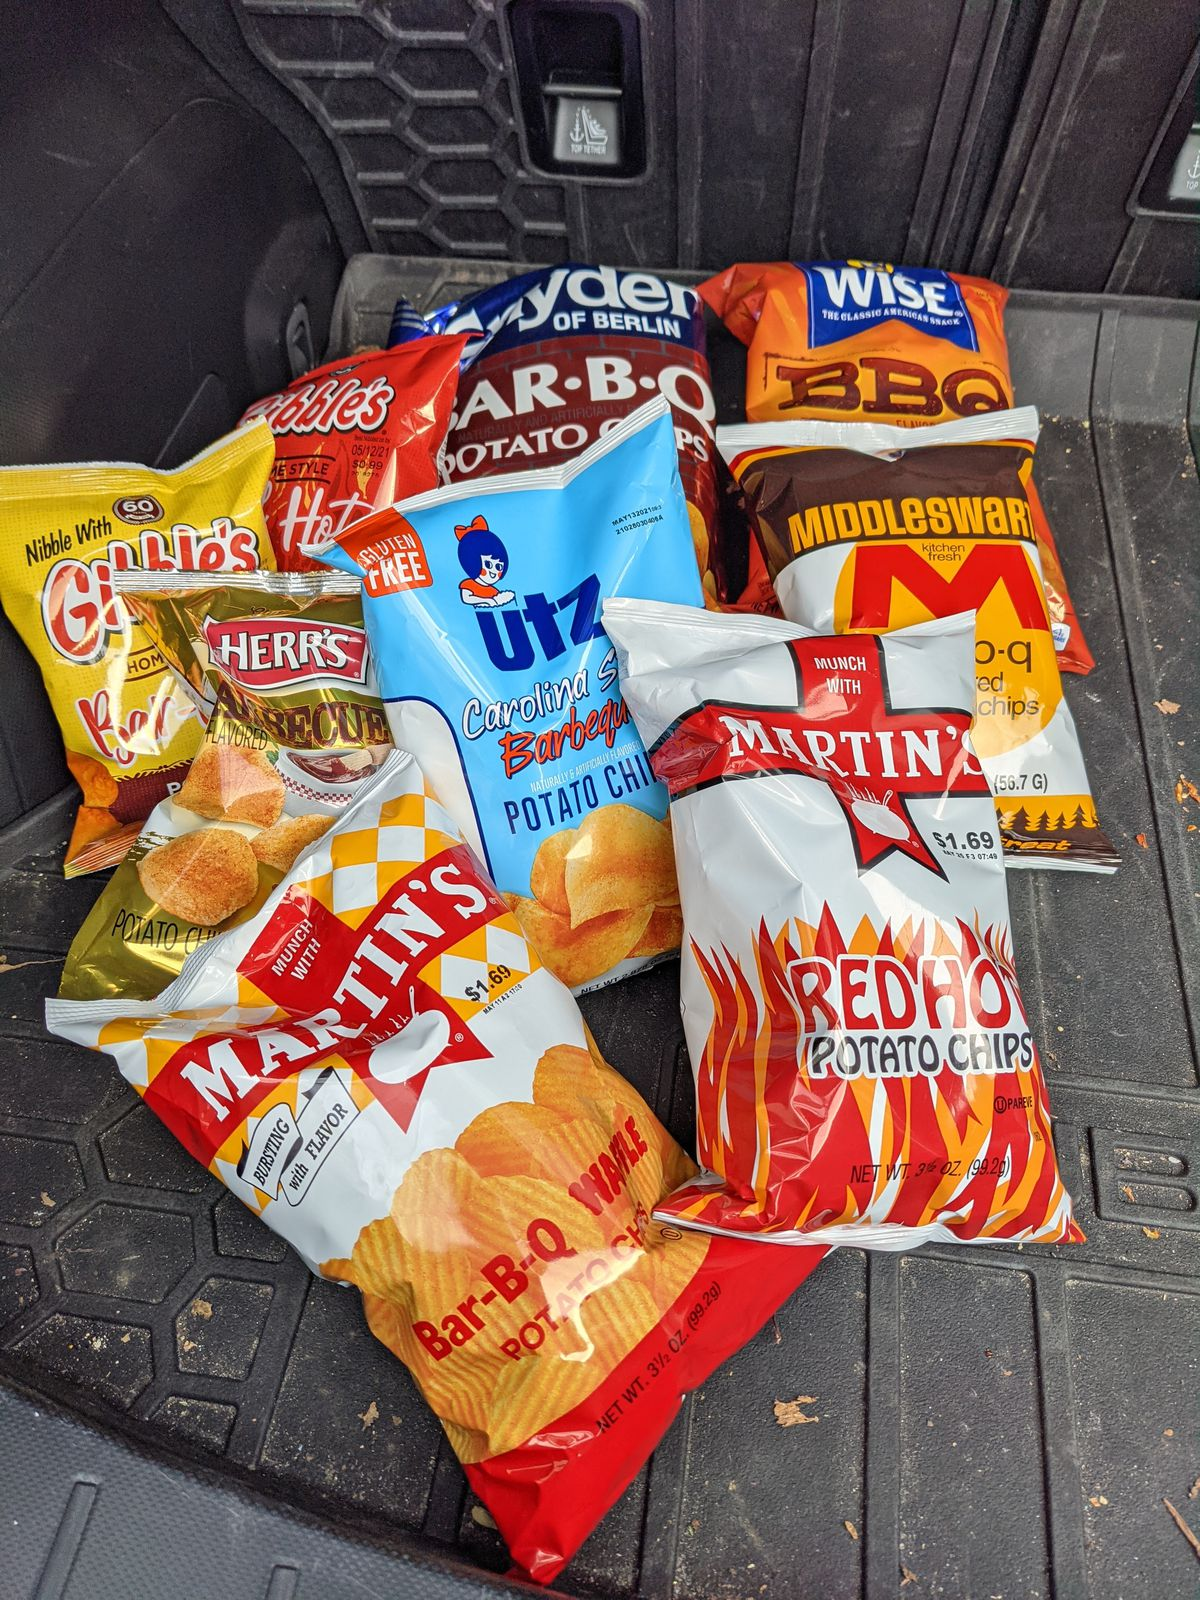 Nine different bags of potato chips, including varieties from Herr and Utz, in the trunk of a car.